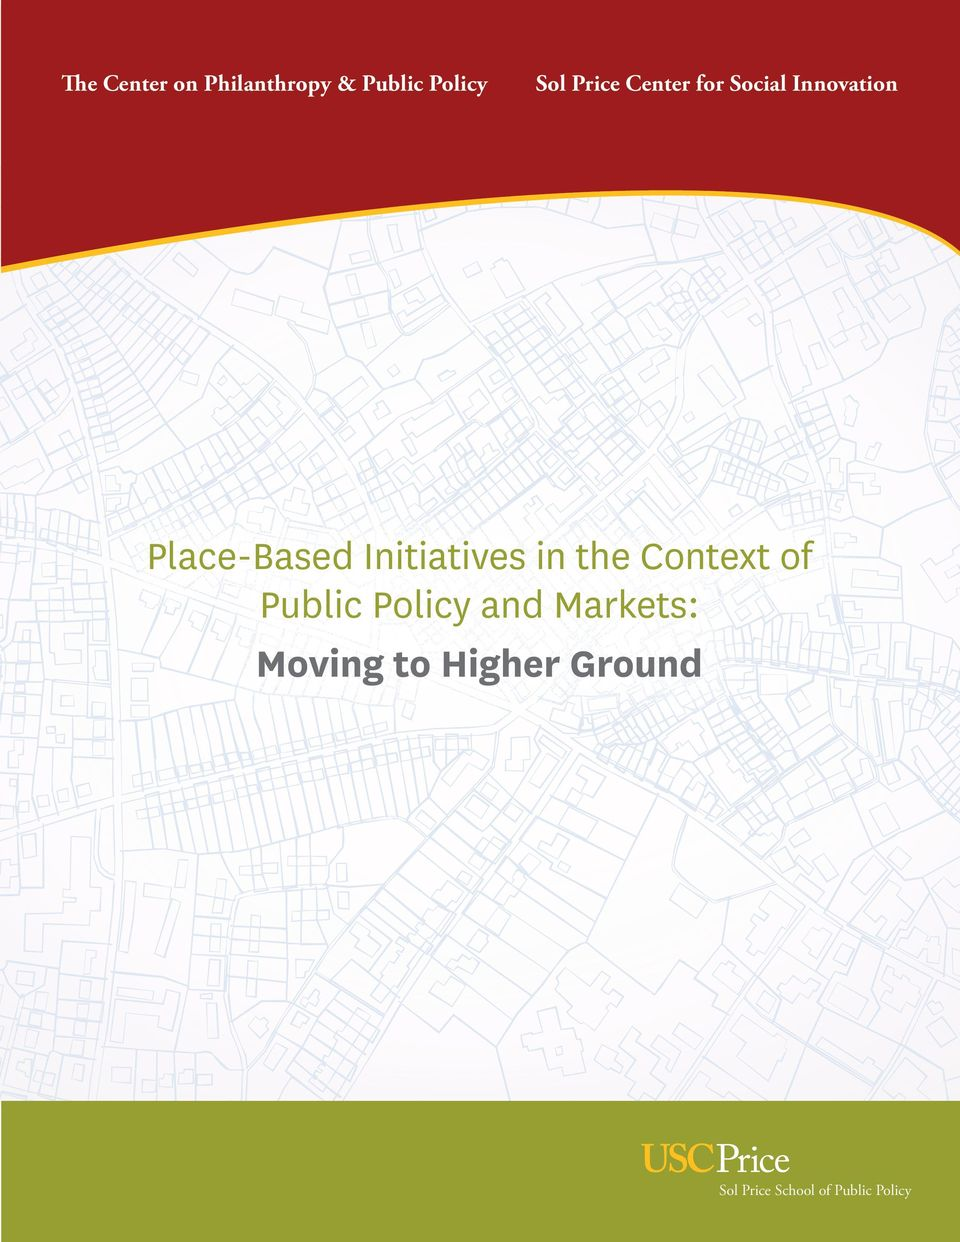 Initiatives in the Context of Public Policy and